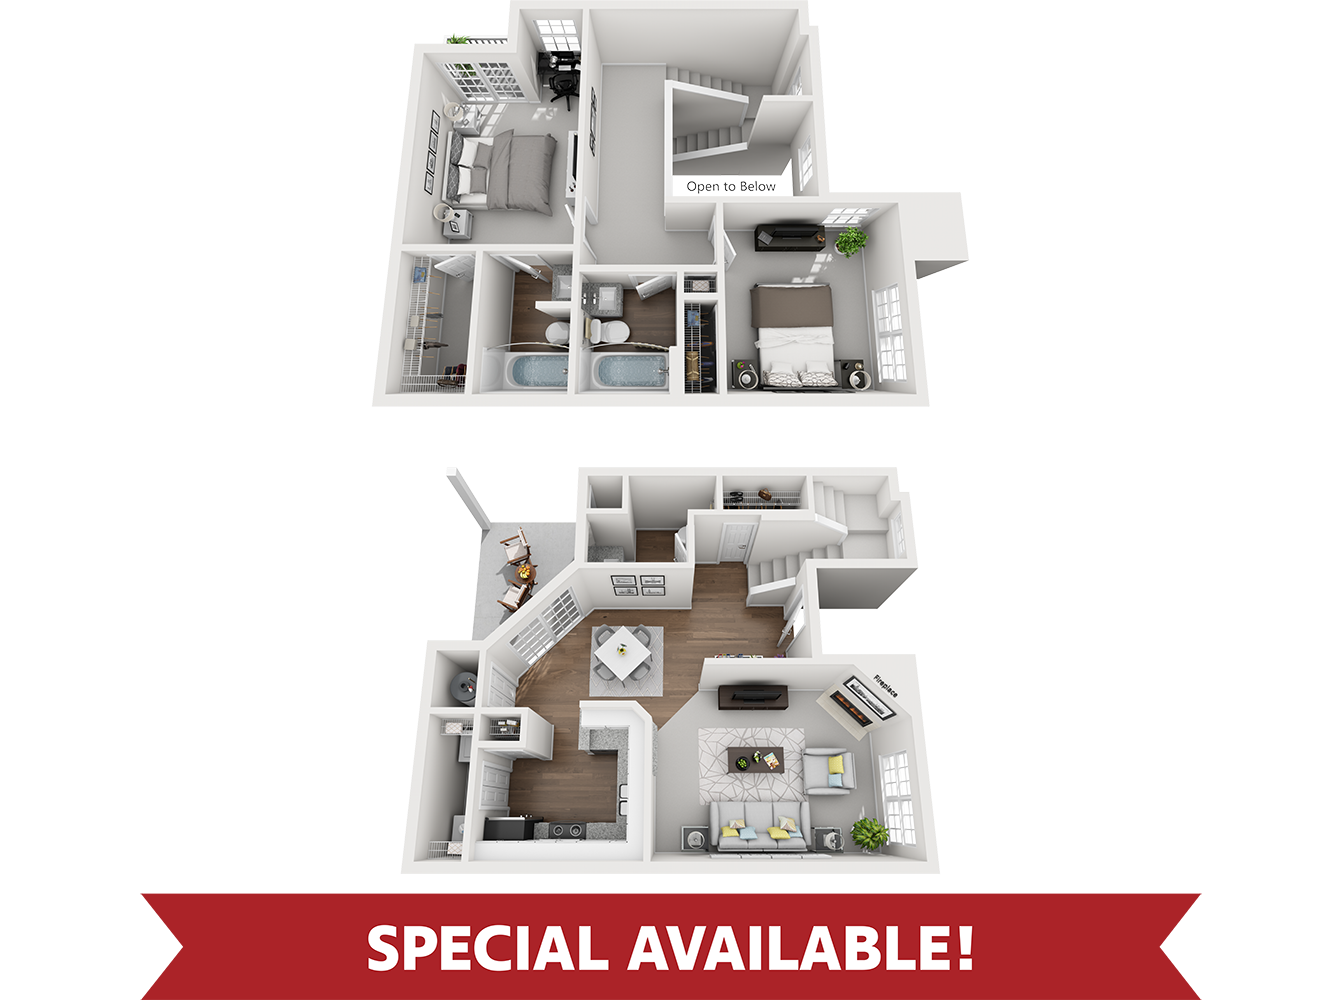 barberry floor plan with special